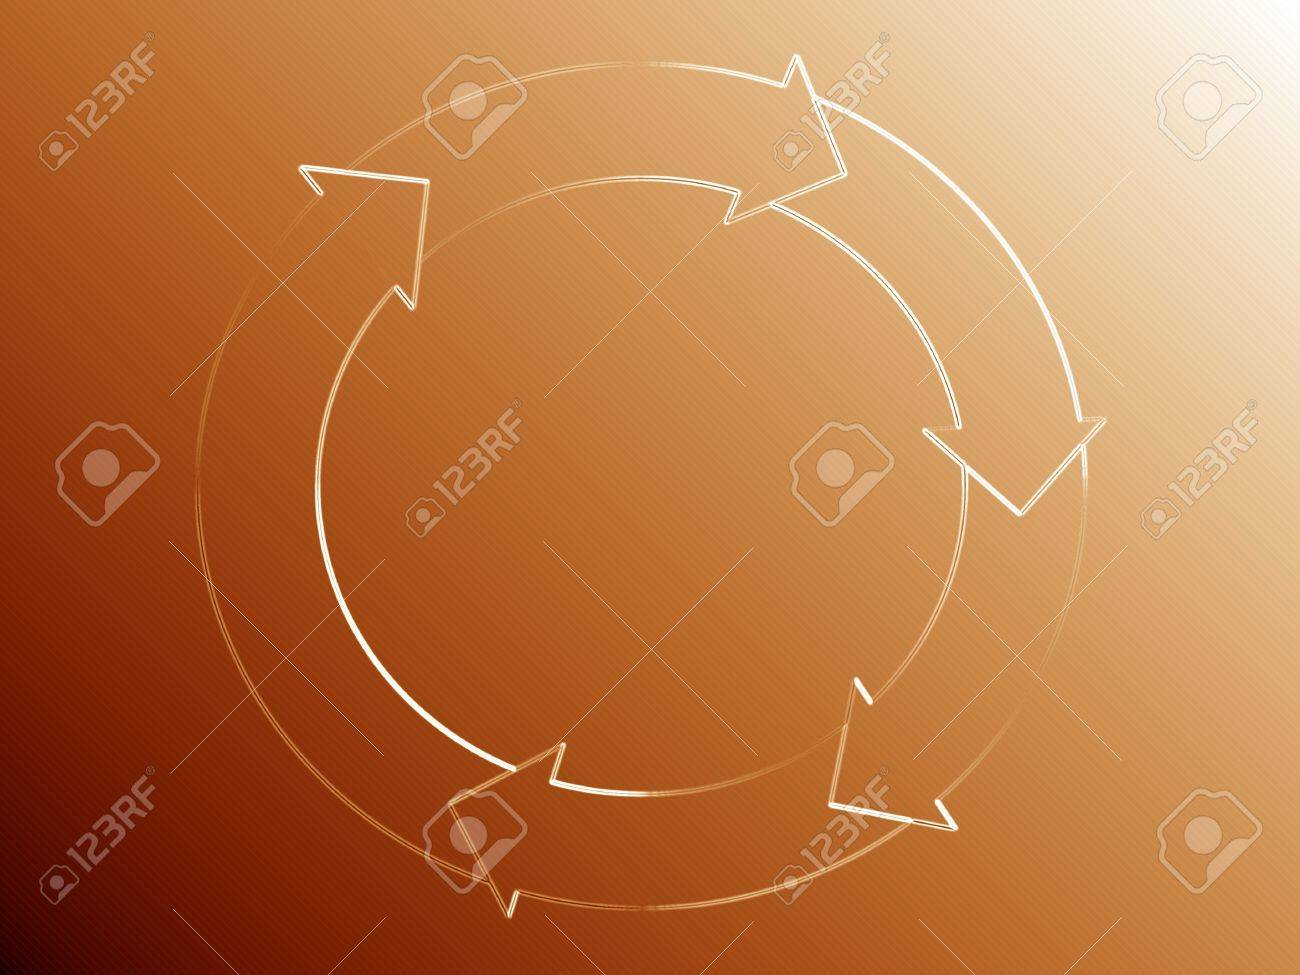 Subtle flow diagram of a circle with arrows over orange golden background Stock Photo - 13792439